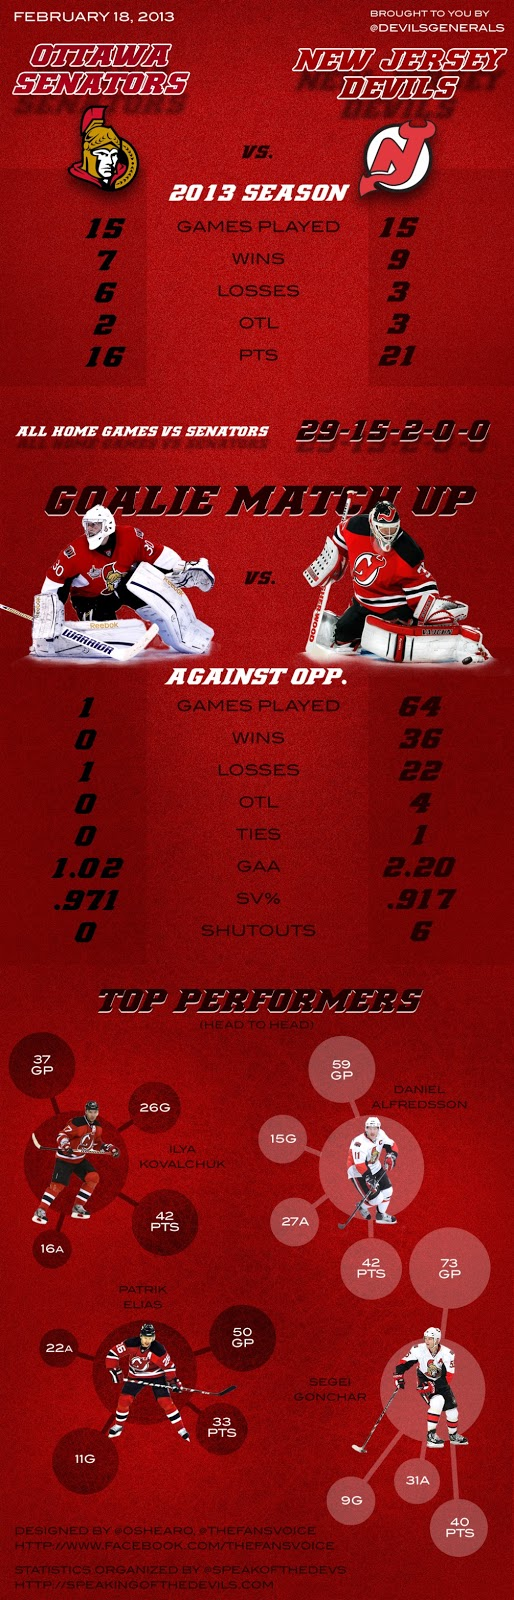 February 18, 2013 Devils Gameday Infographic